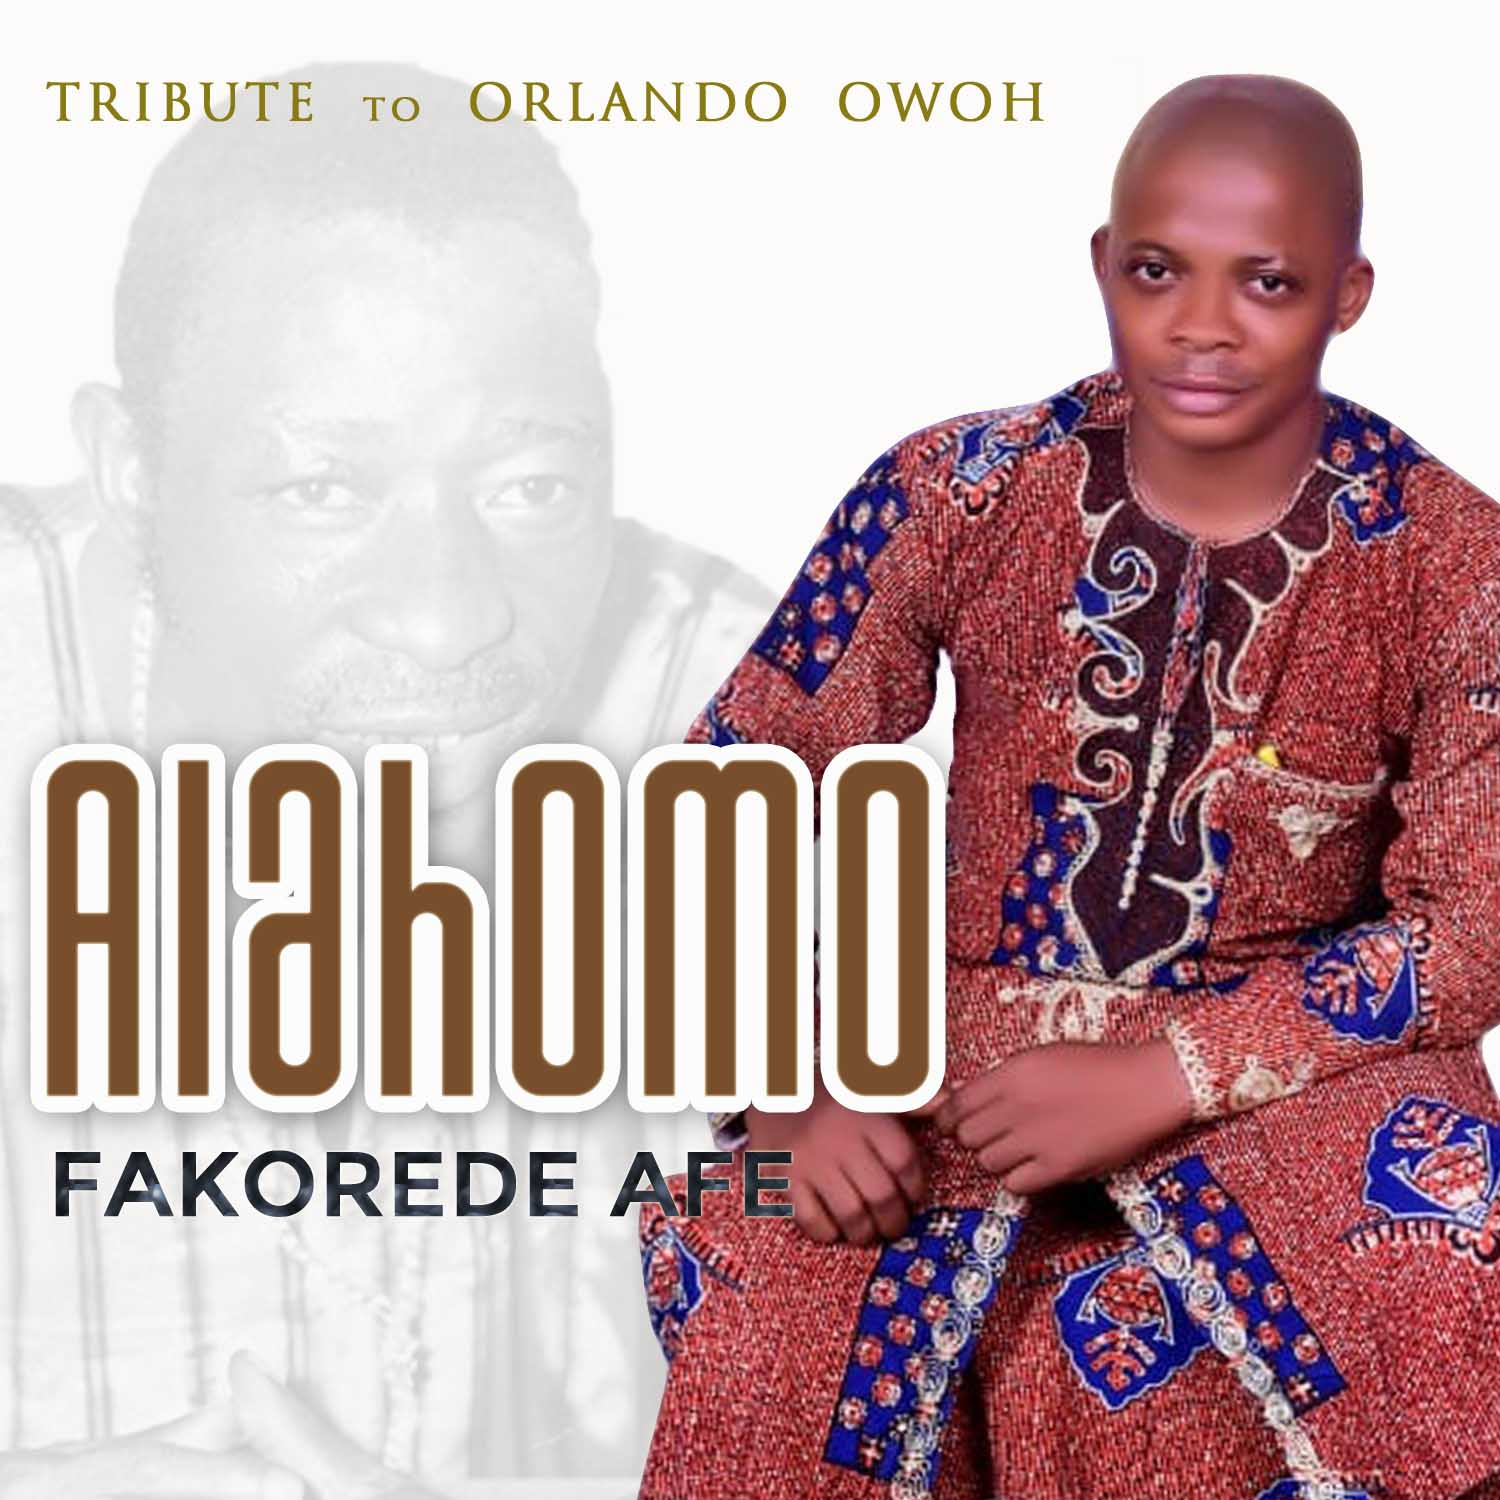 Music:Juju highlife Fakorede Alahomo Mp3 Download #Arewapublisize